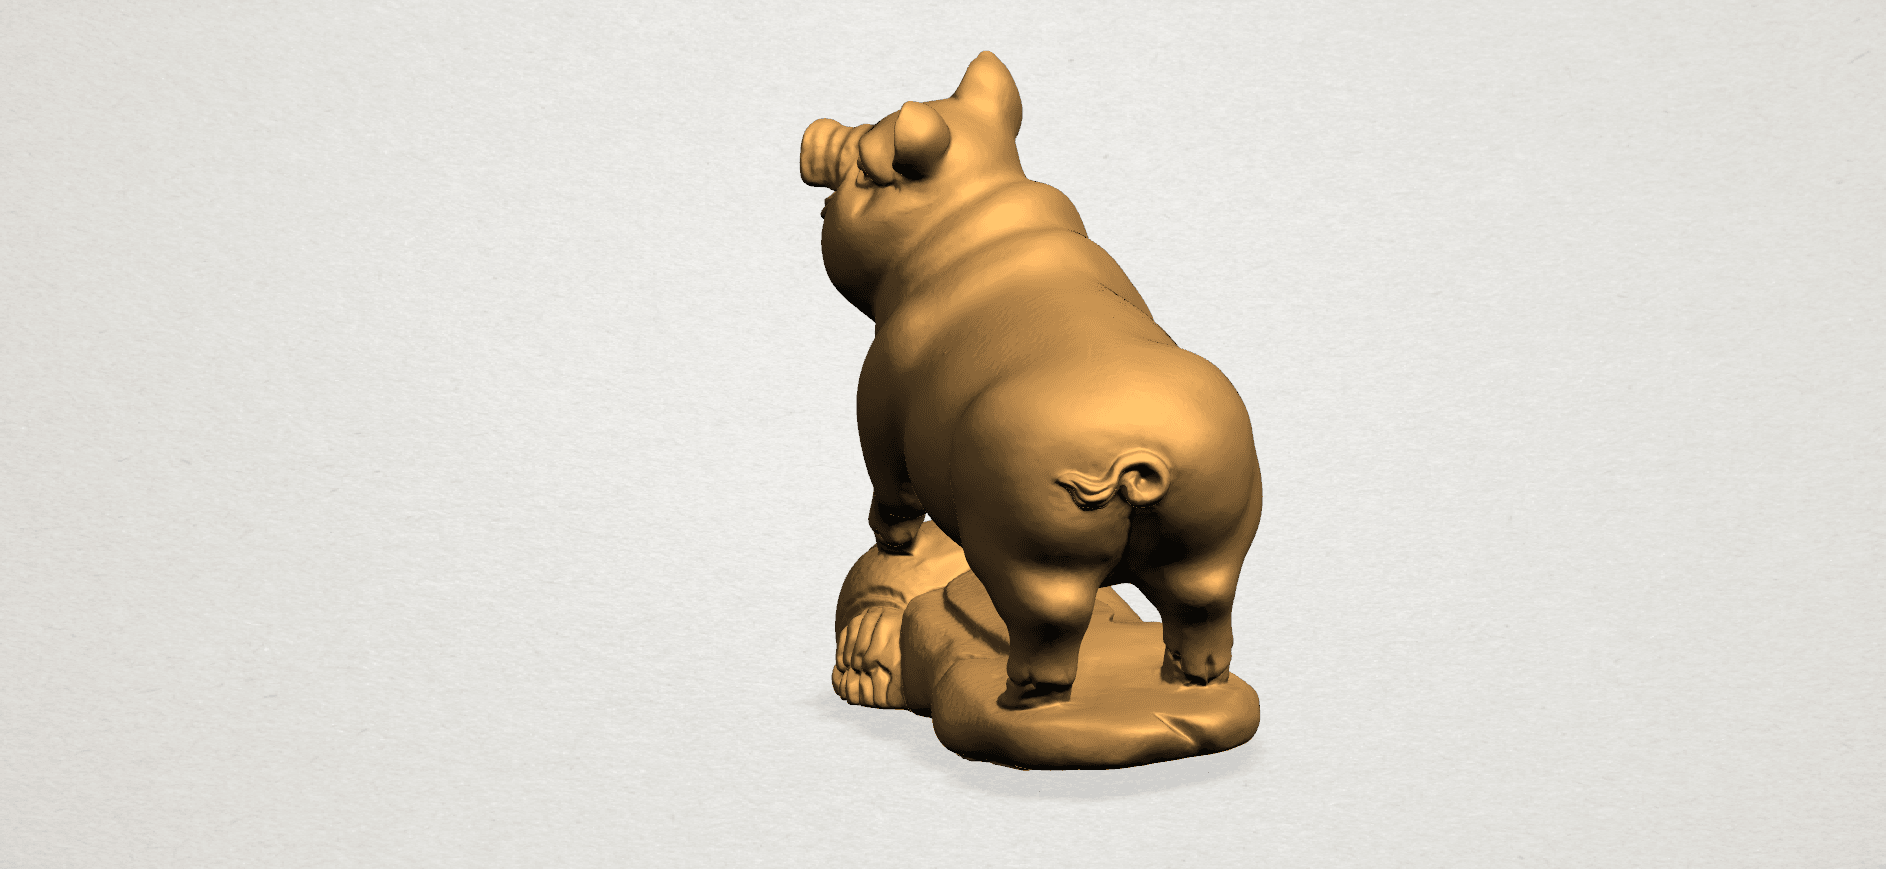 Chinese Horoscope12-A03.png Download free STL file Chinese Horoscope 12 pig • Model to 3D print, GeorgesNikkei